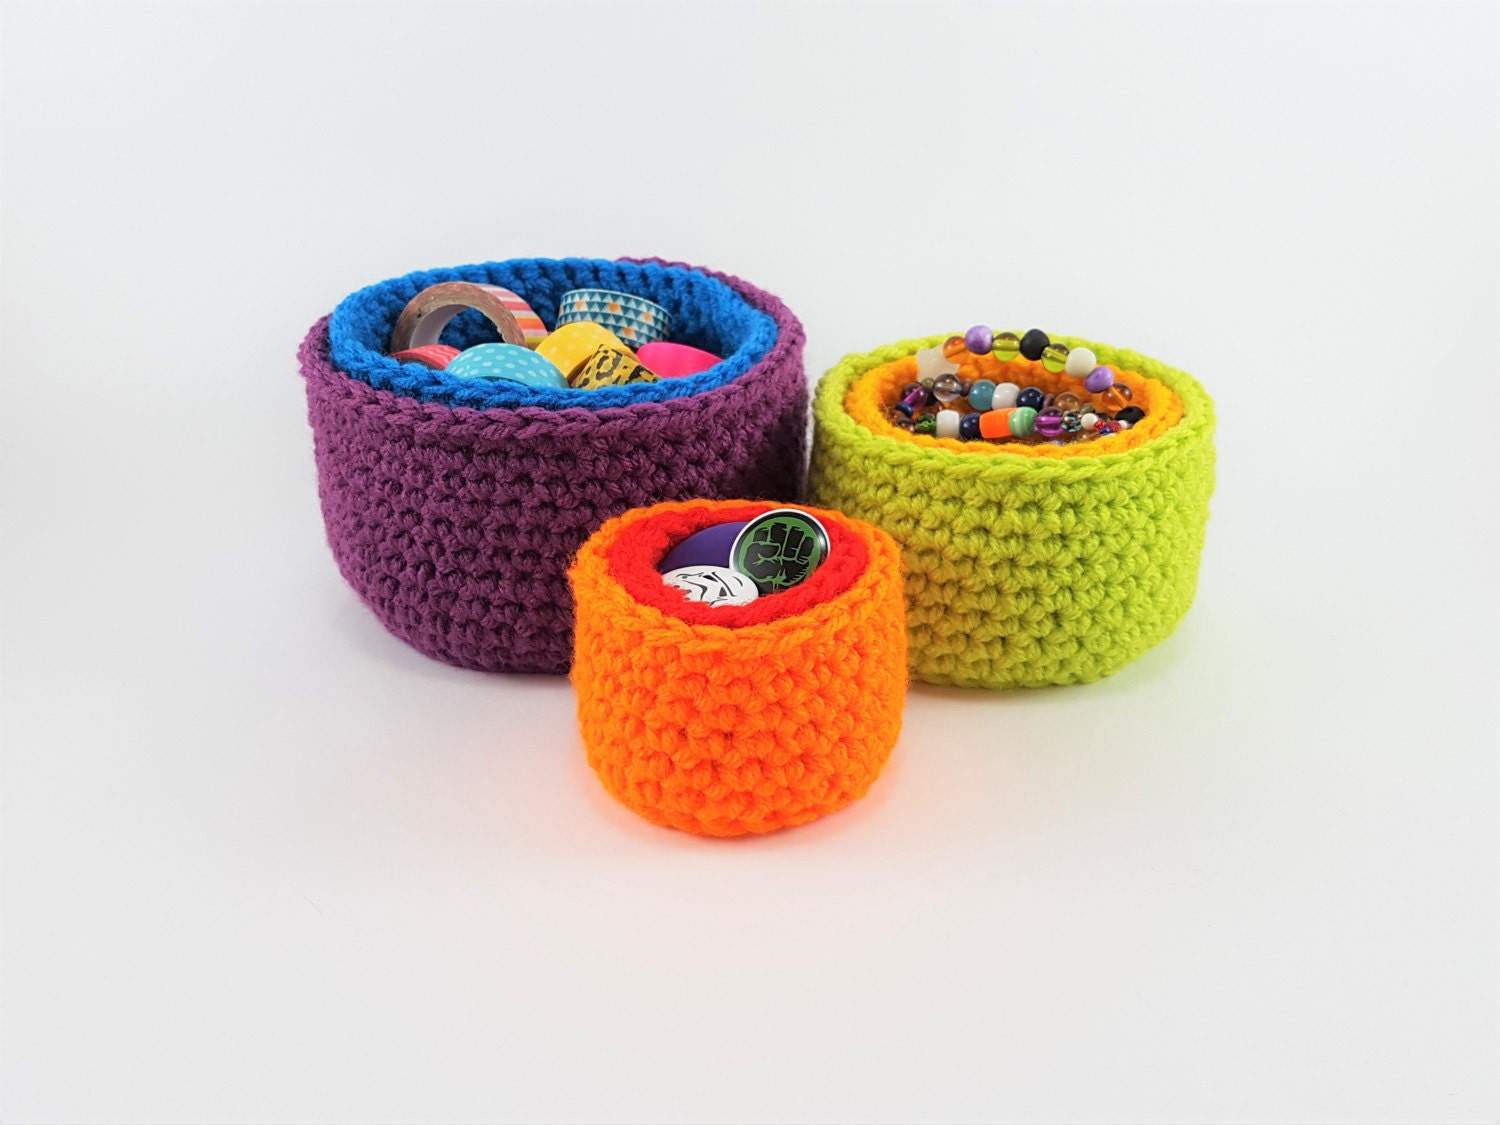 Rainbow Stacking Pots  Useful Storage  Crocheted  Bright Acrylic Yarn  Purple Blue Green Yellow Orange Red  Fun  Ready To Ship